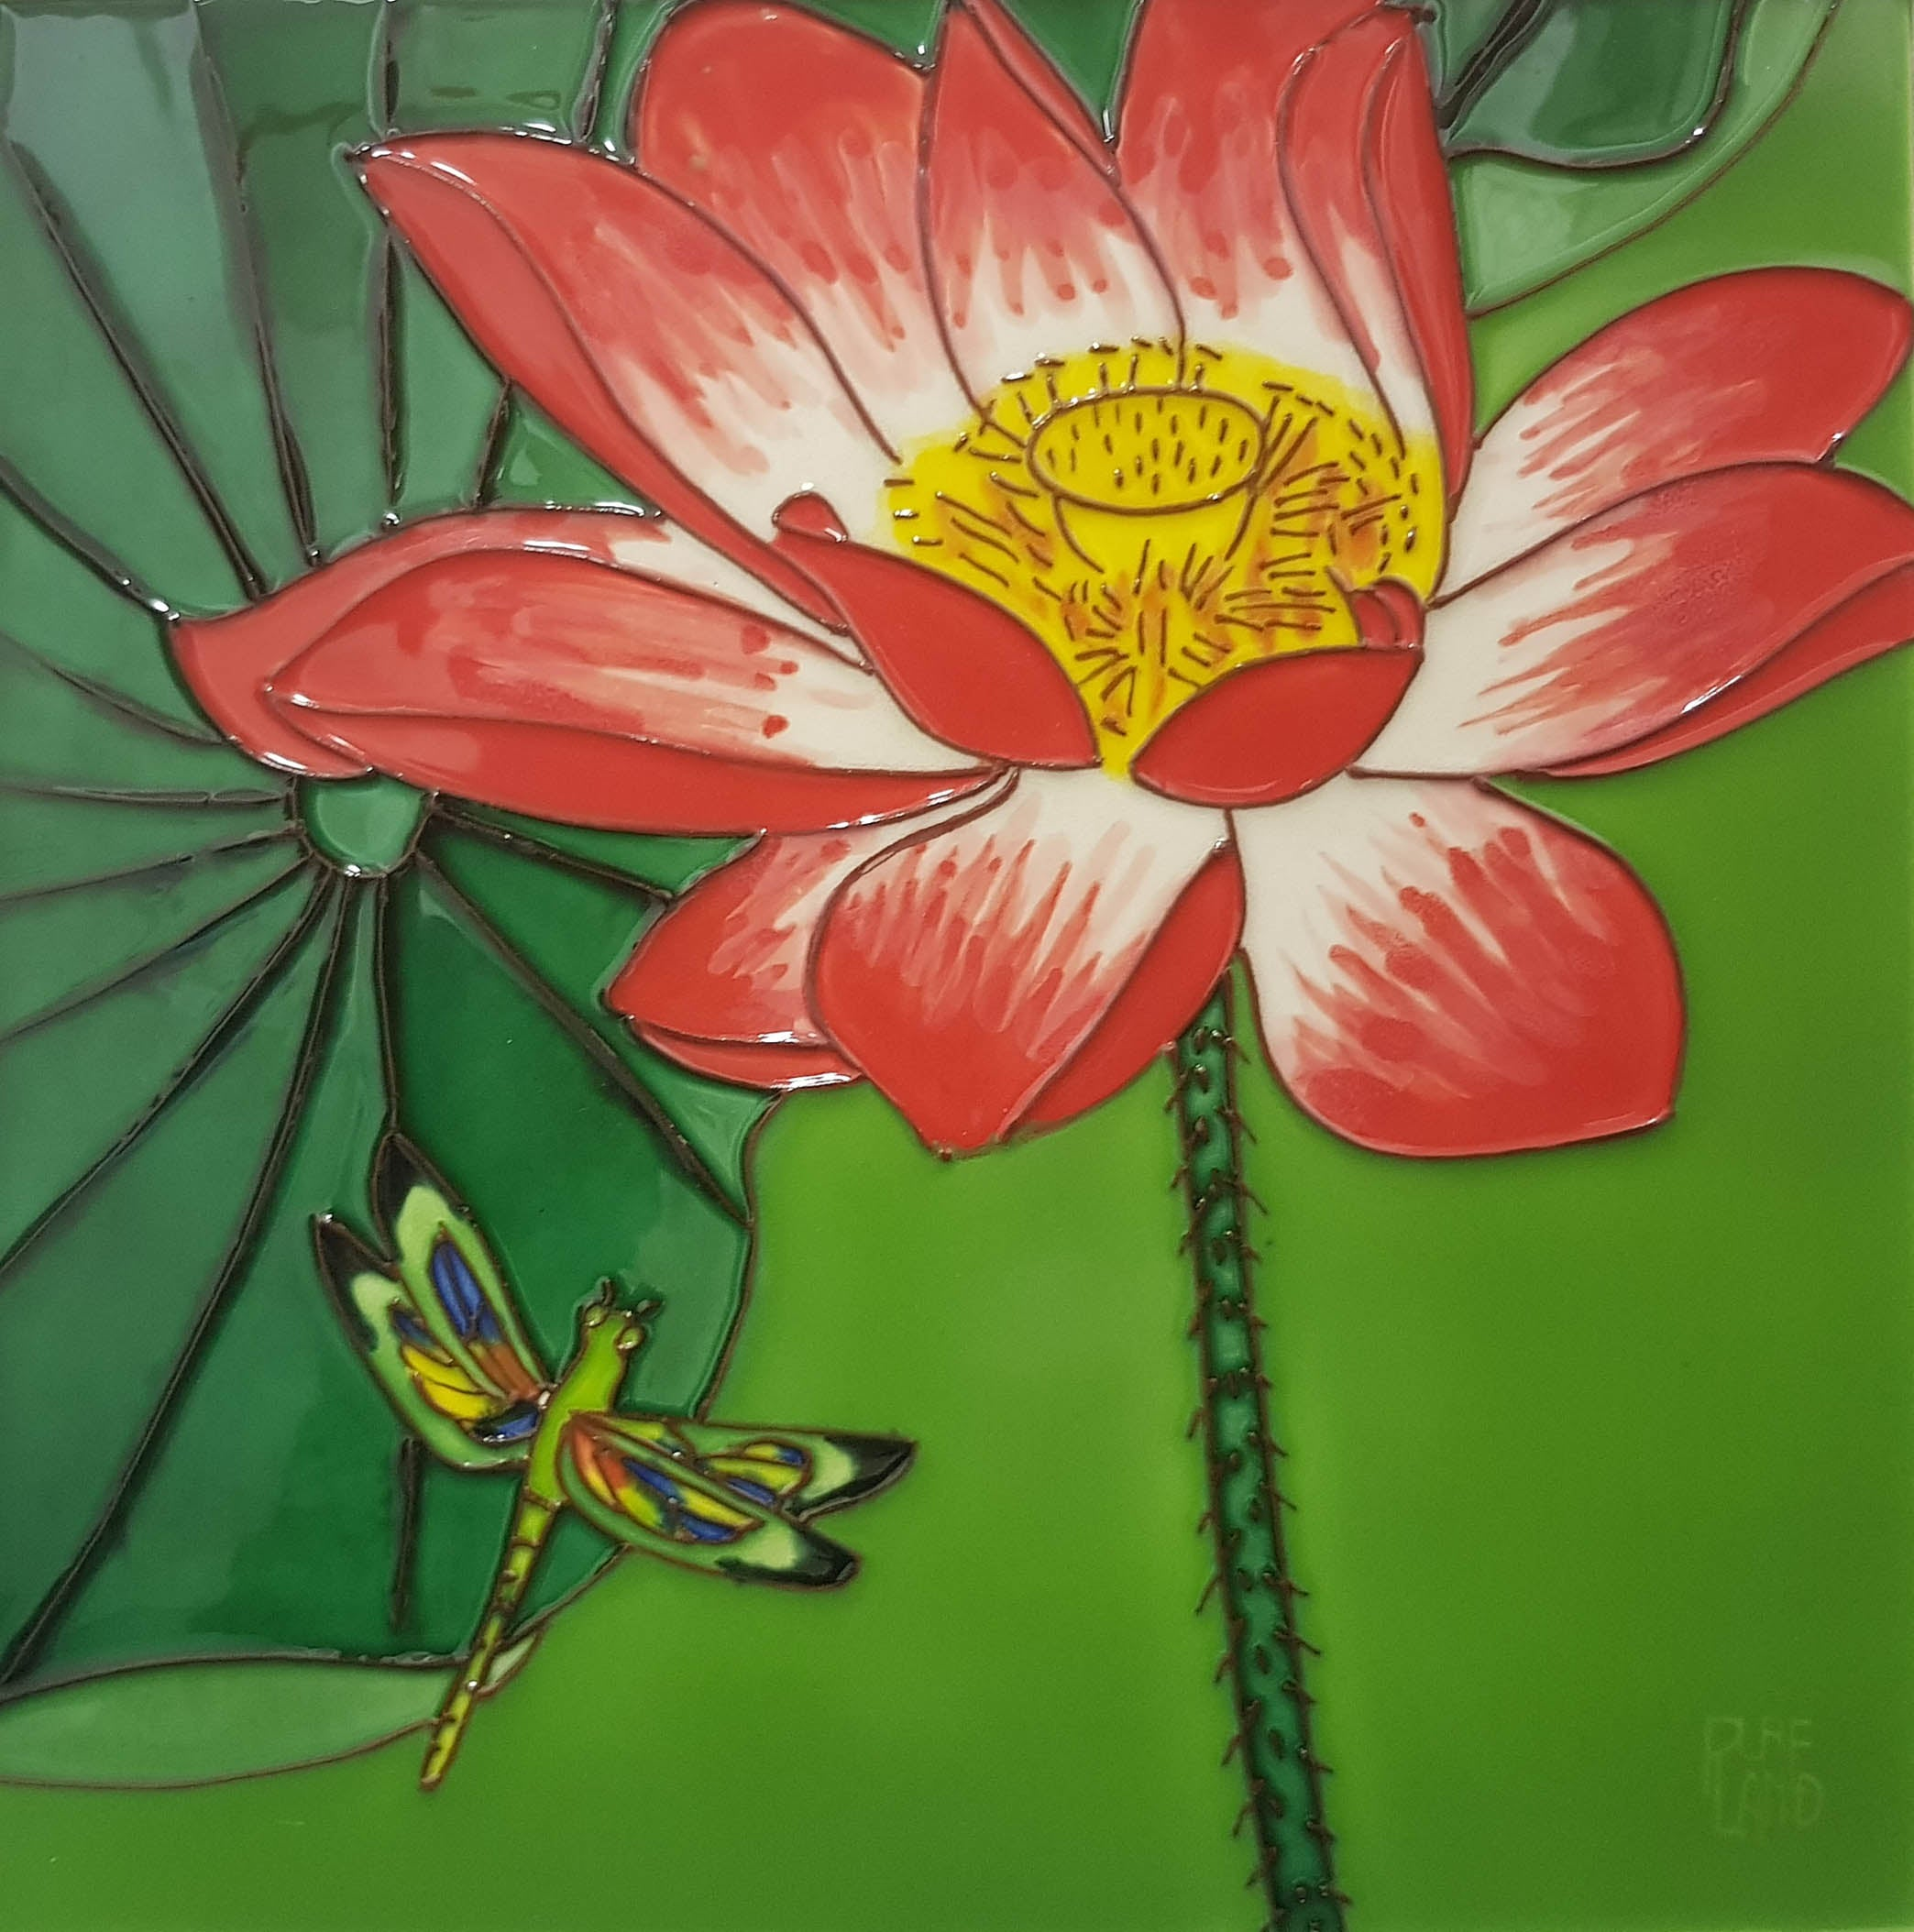 3521 Lotus Flower With Dragonfly Bottom Left 30cm X 30cm Ceramic